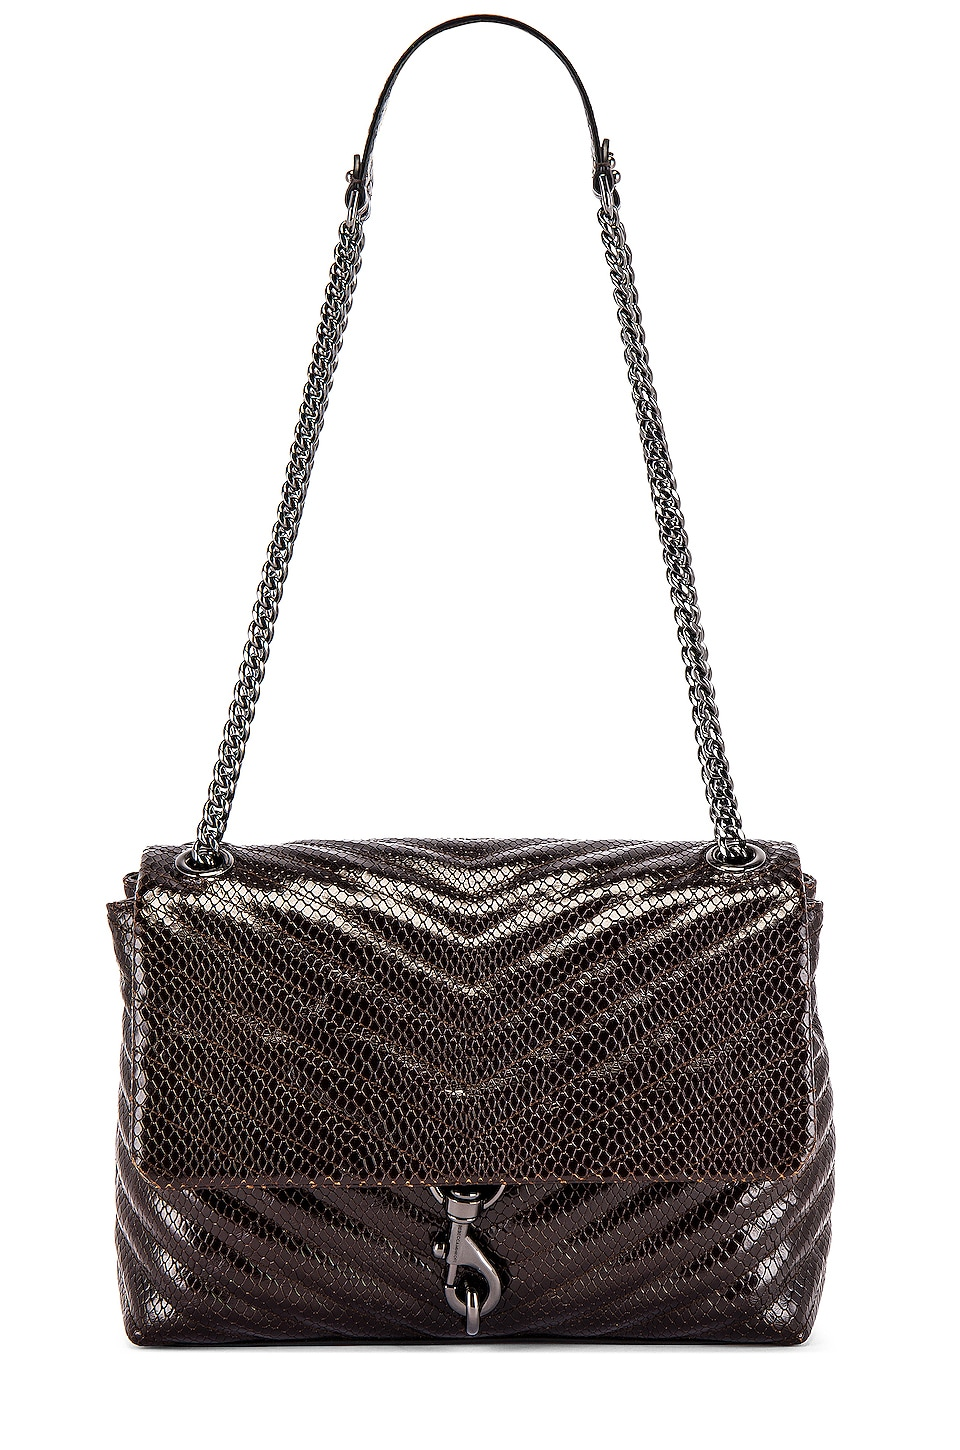 Rebecca Minkoff Edie Flap Shoulder Bag in Ganache